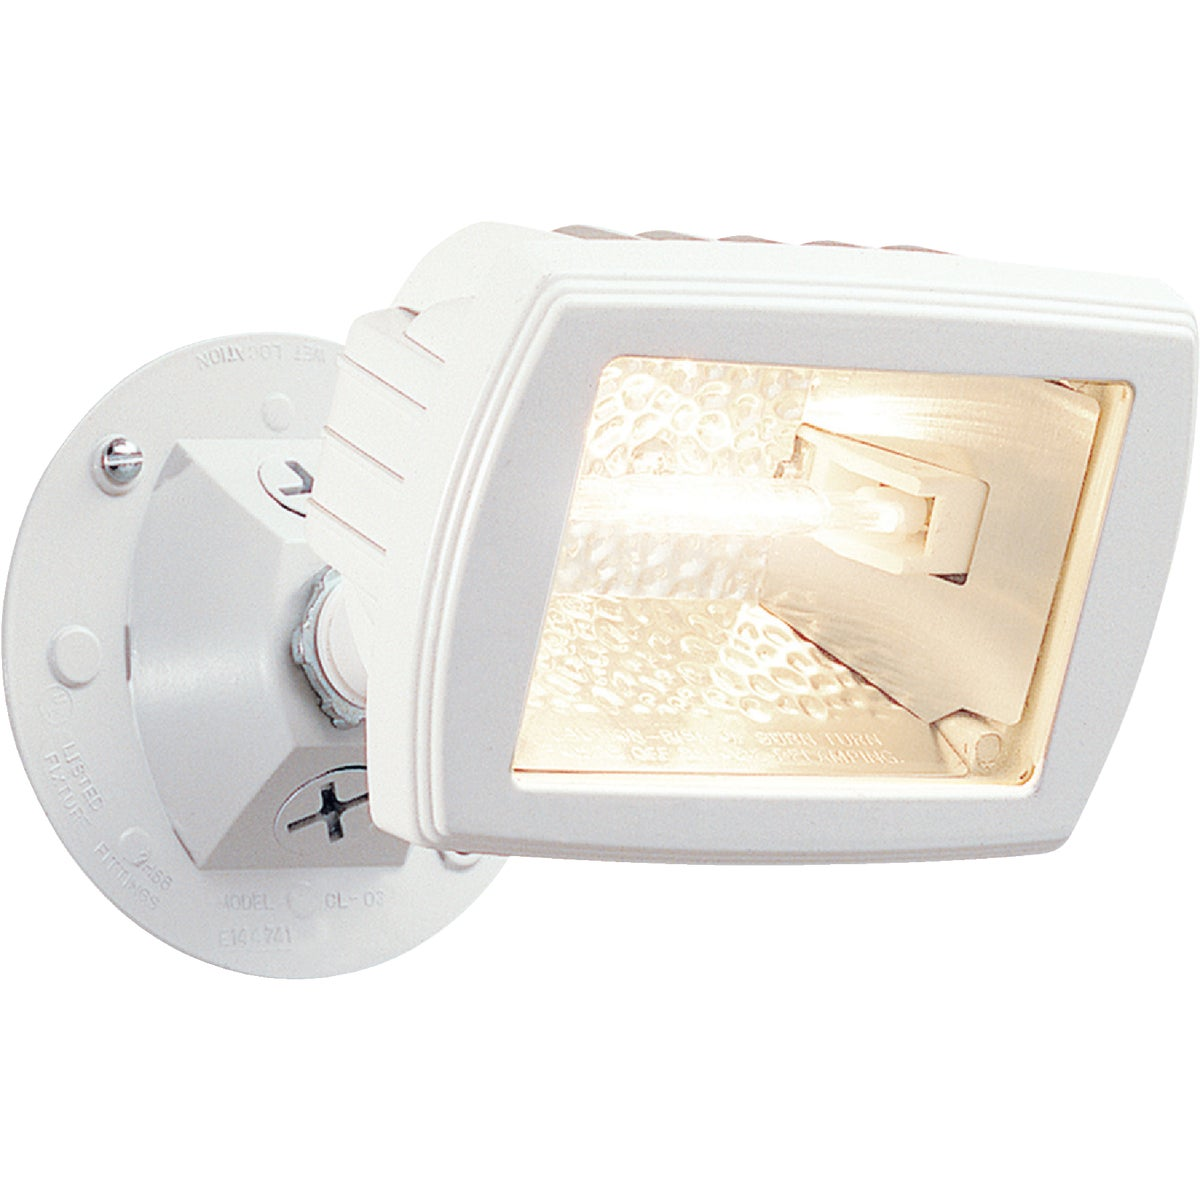 150W WHT QTZ FLOODLIGHT - MQF150W by Cooper Lighting